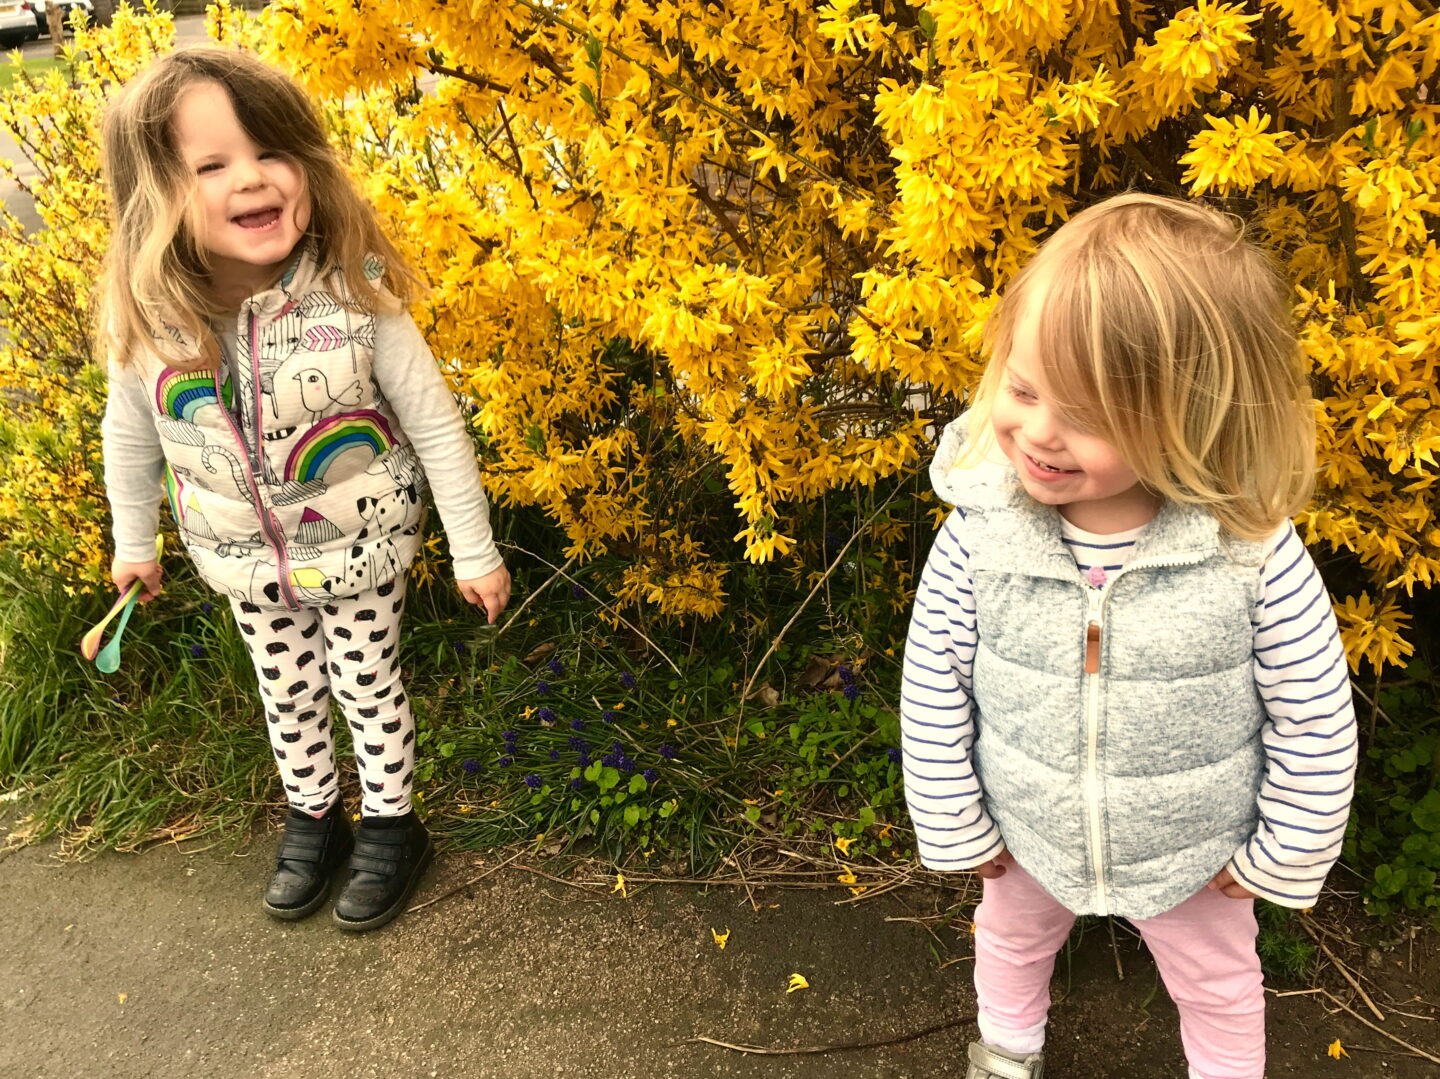 Two sisters standing in front of a yellow flowering bush, smiling